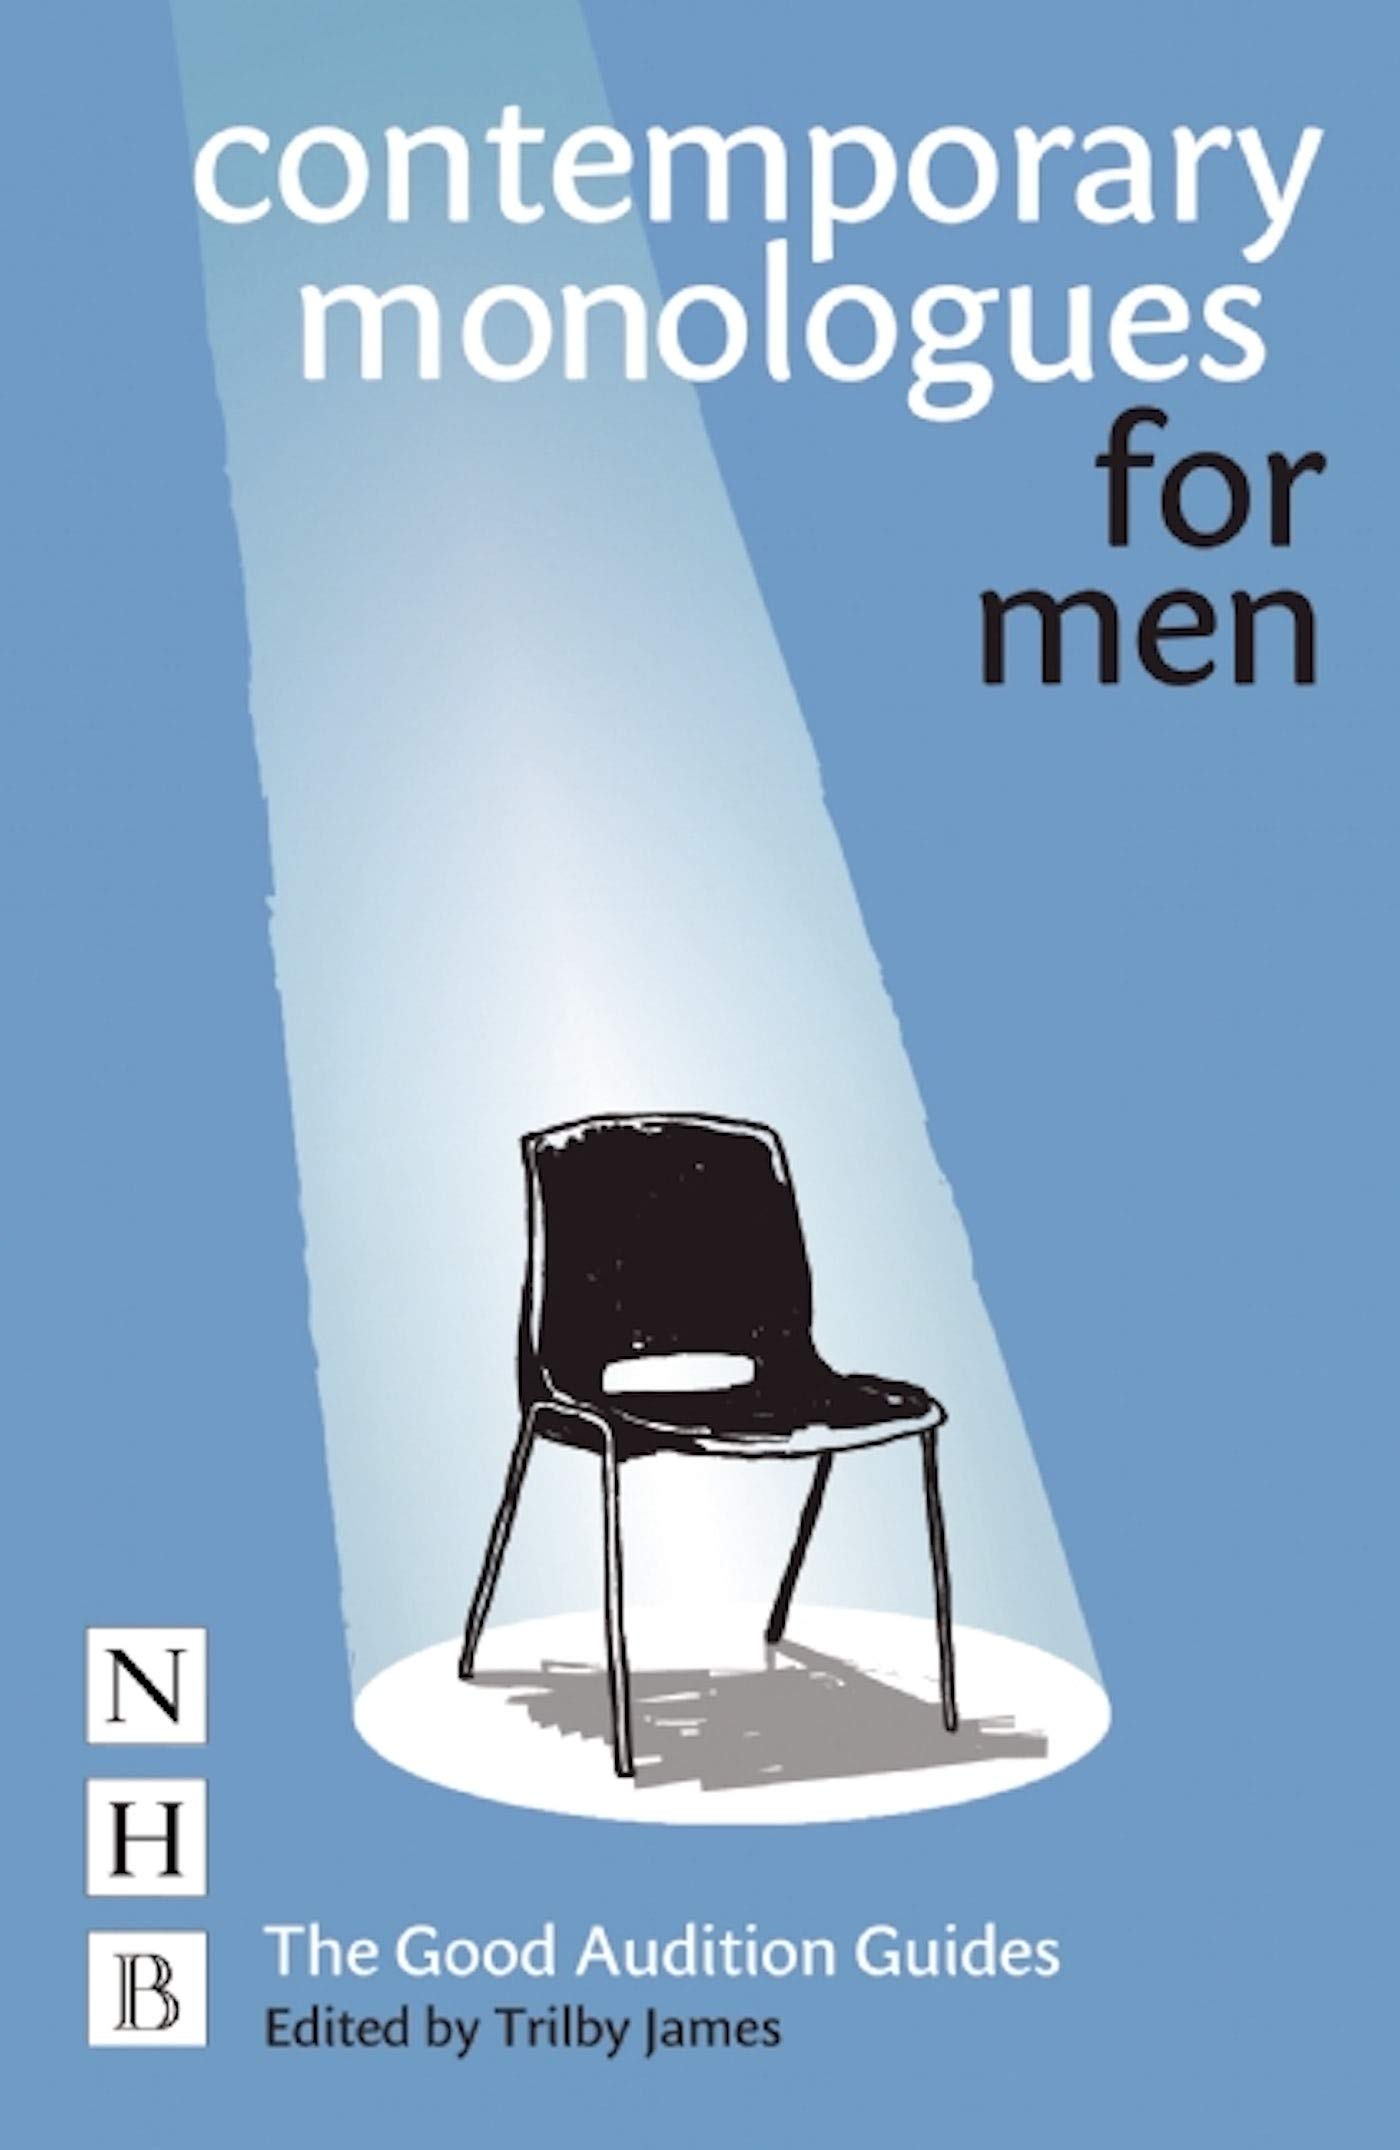 Contemporary Monologues for Men NHB Good Audition Guides The Good Audition  Guides: Amazon.co.uk: Trilby James: Books